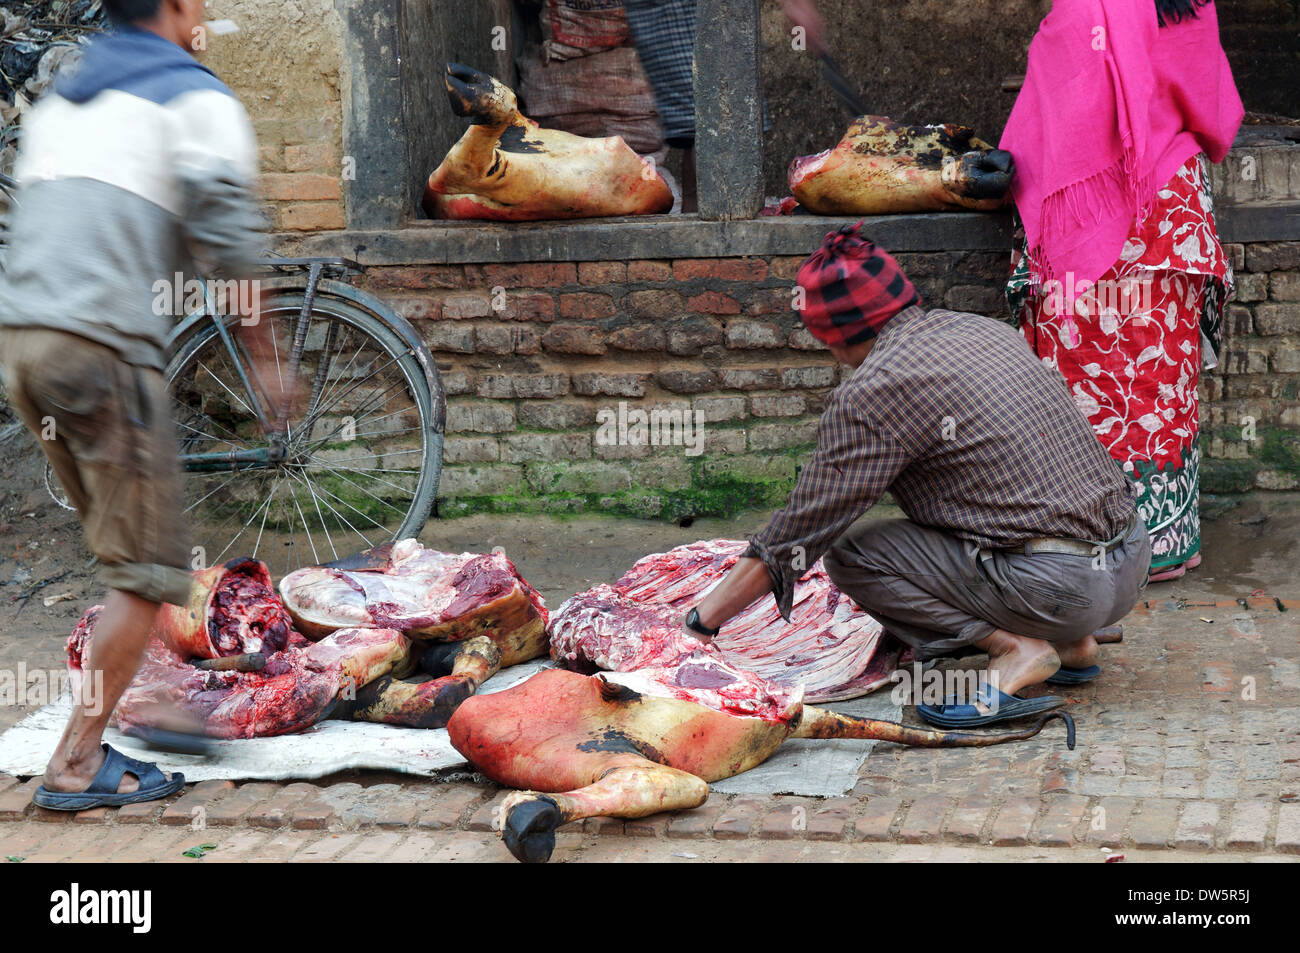 a-butchers-stall-in-a-nepalese-market-DW